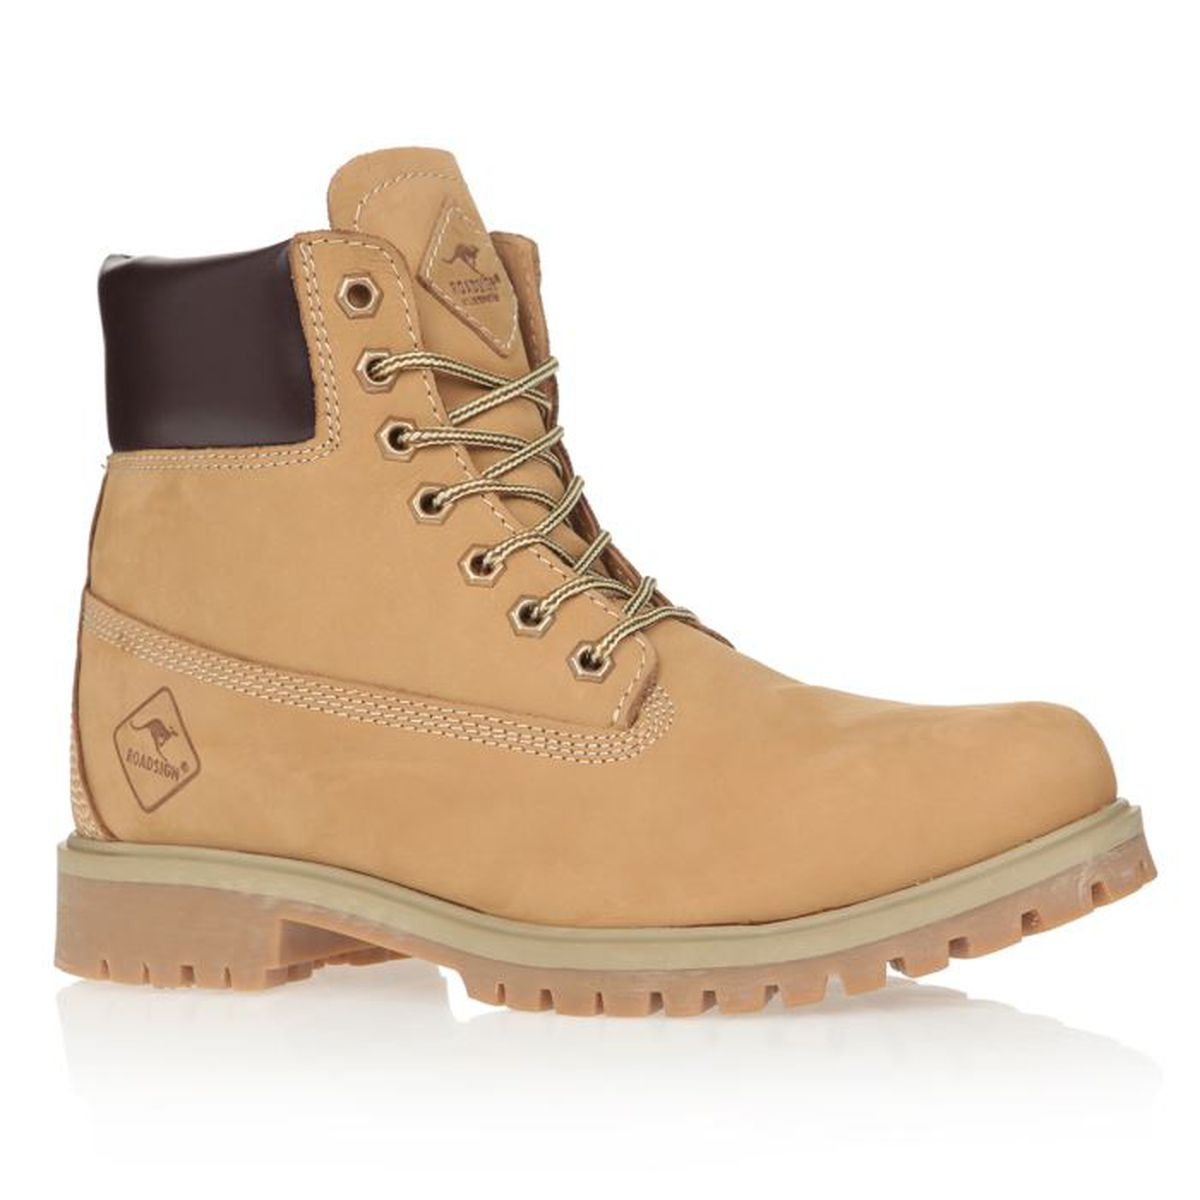 ROADSIGN Bottines Road Chaussures Homme homme Miel  Achat / Vente